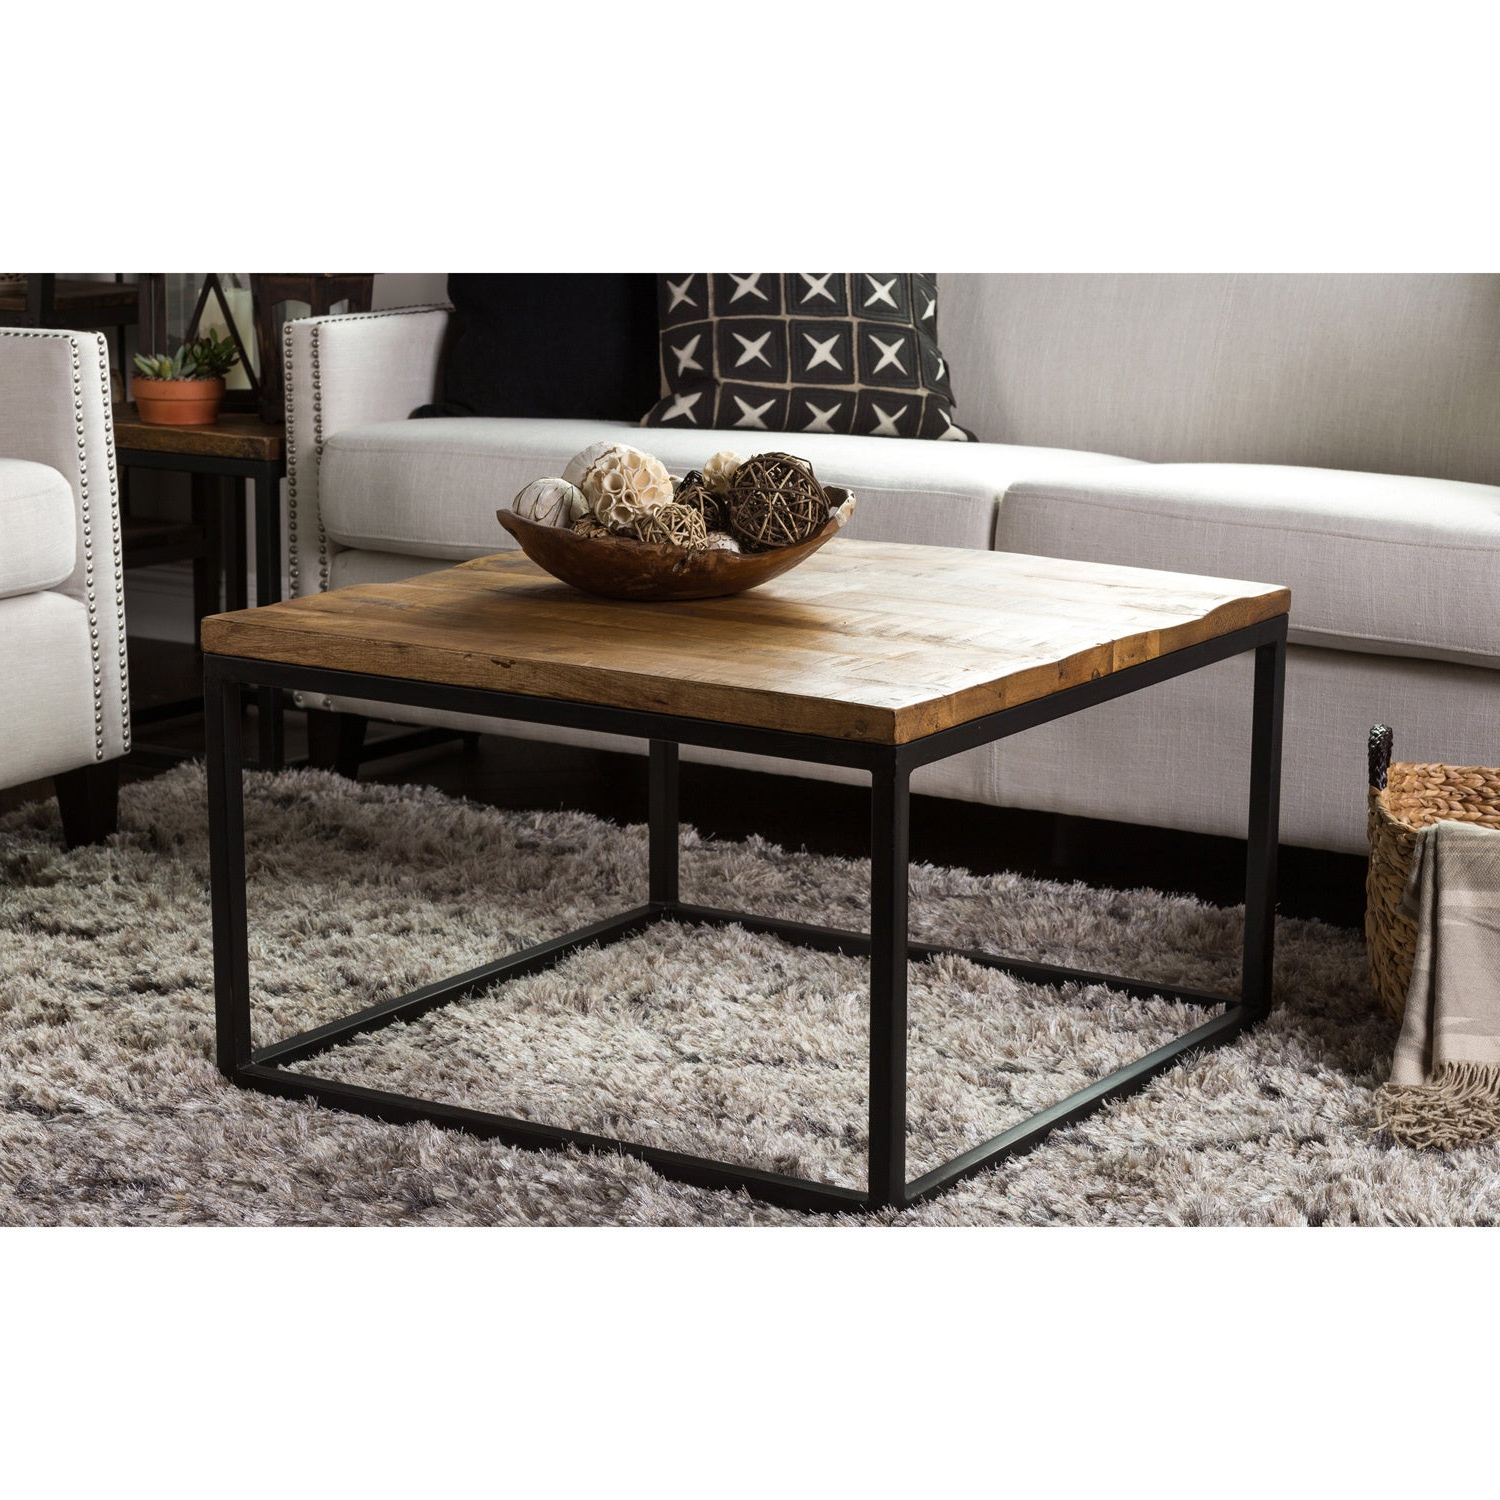 Paris Natural Wood And Iron 30 Inch Square Coffee Tablekosas Home Throughout 2019 Paris Natural Wood And Iron 30 Inch Square Coffee Tables (View 2 of 20)